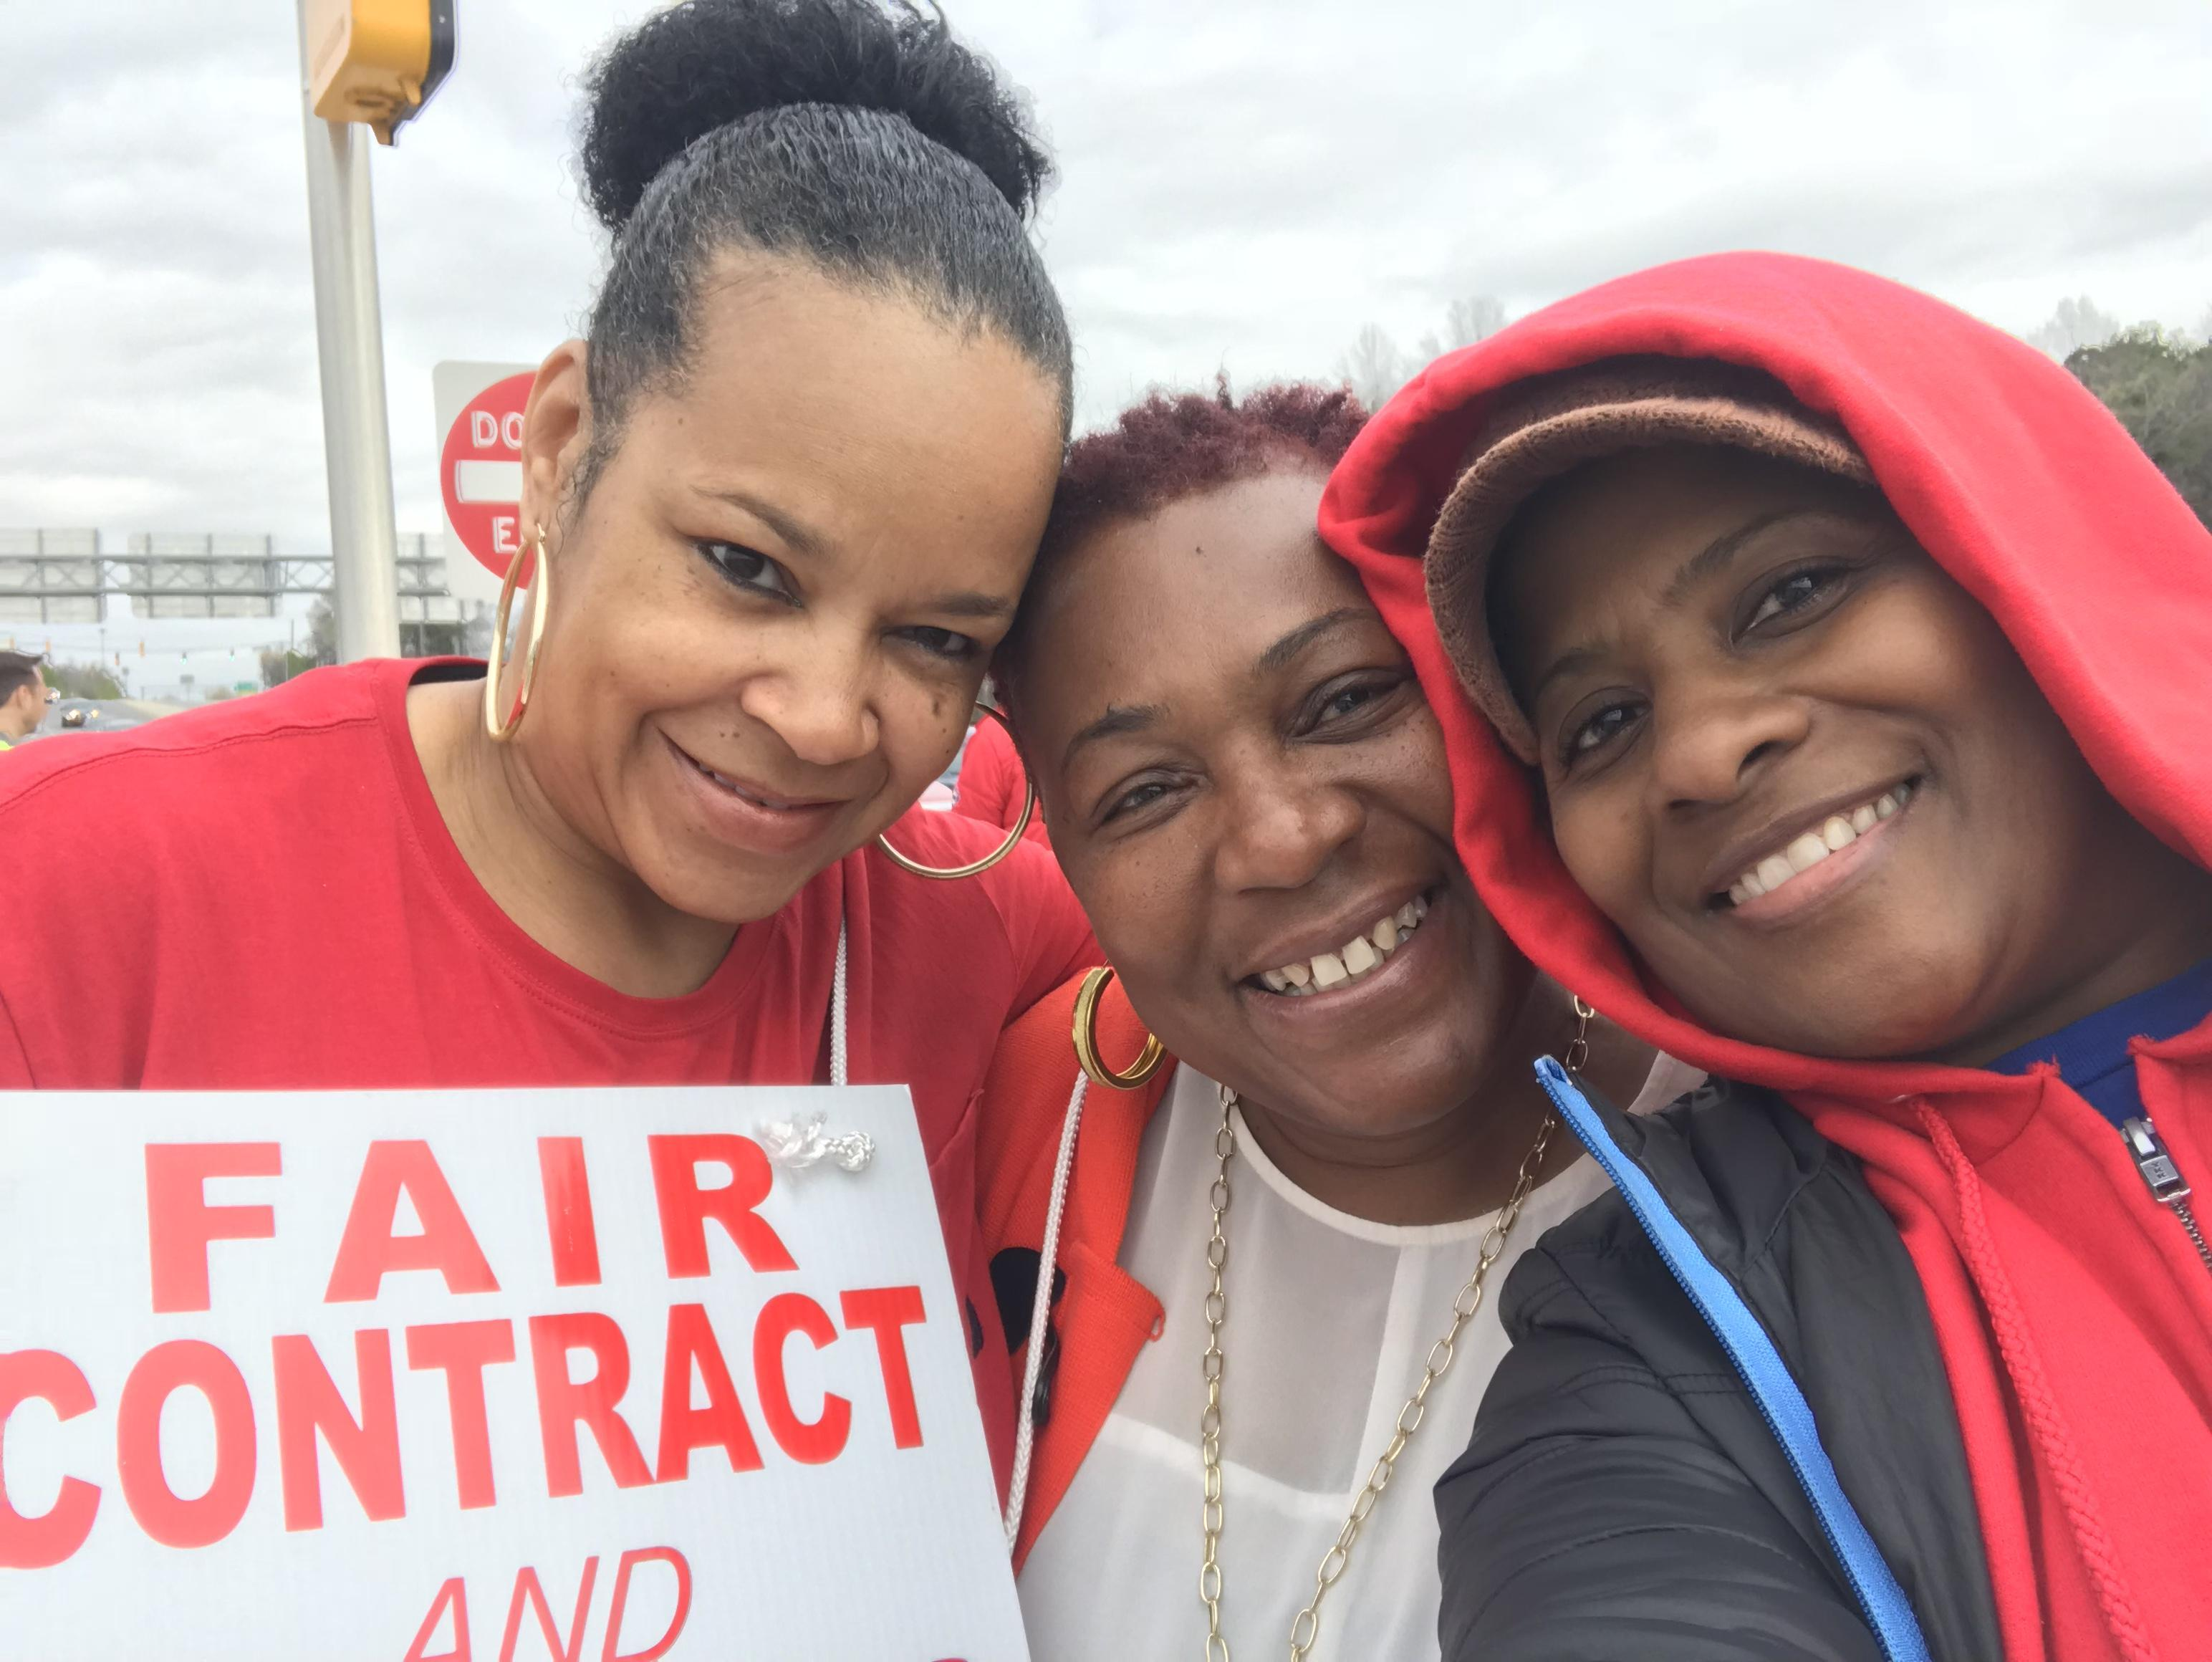 Piedmont Fair Contract